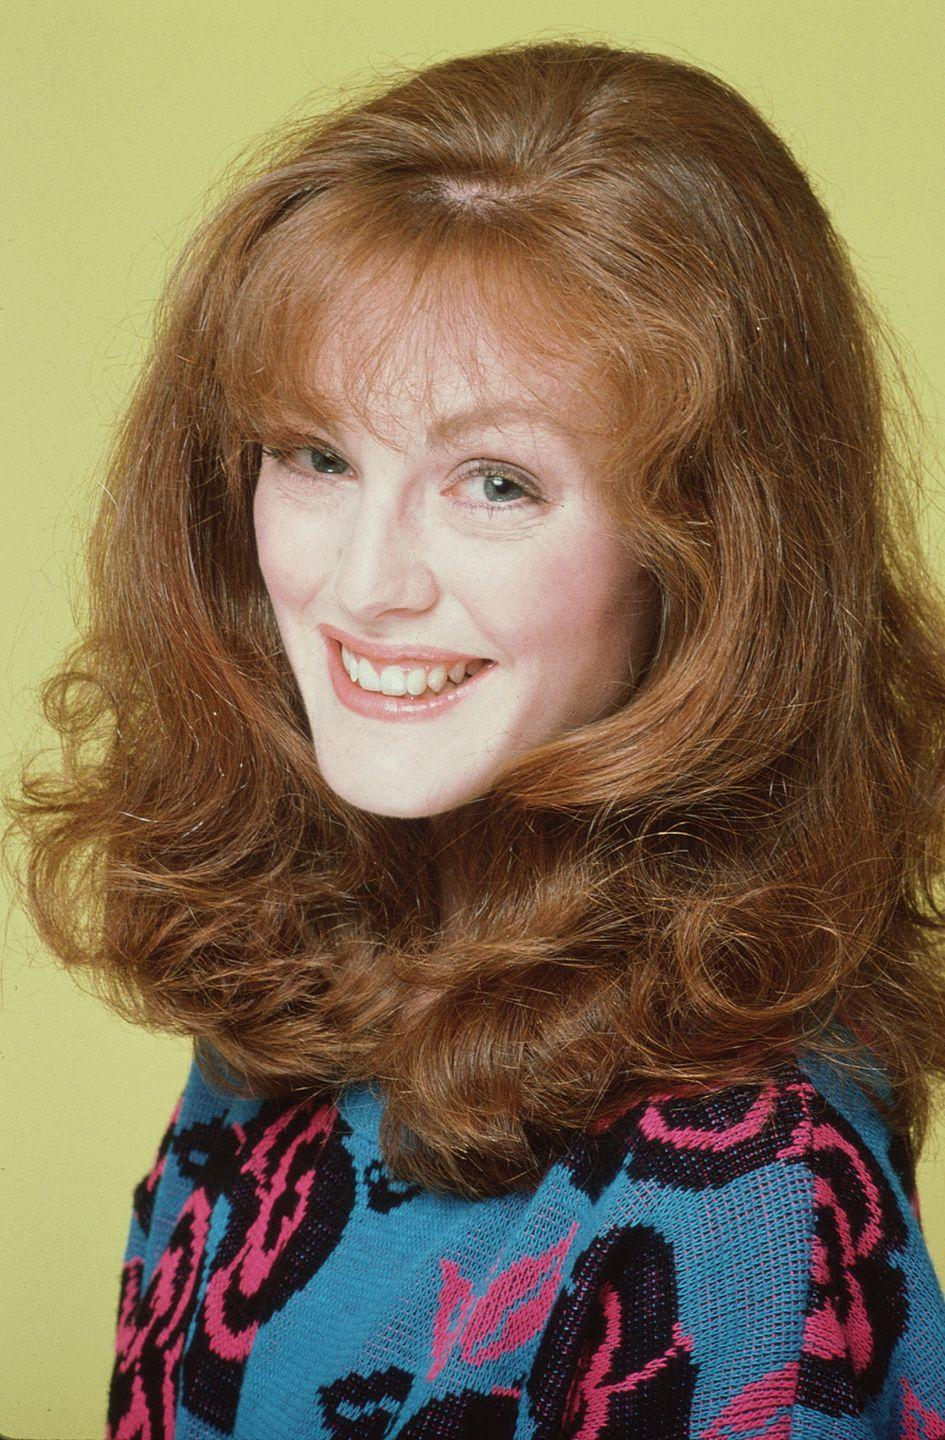 <p>Born into a military family in North Carolina, Julianne Moore began pursuing a career in acting at the age of 24. After a few minor television roles, Moore made her film debut in the 1990 flick, <em>Tales from the Darkside: The Movie.</em></p>